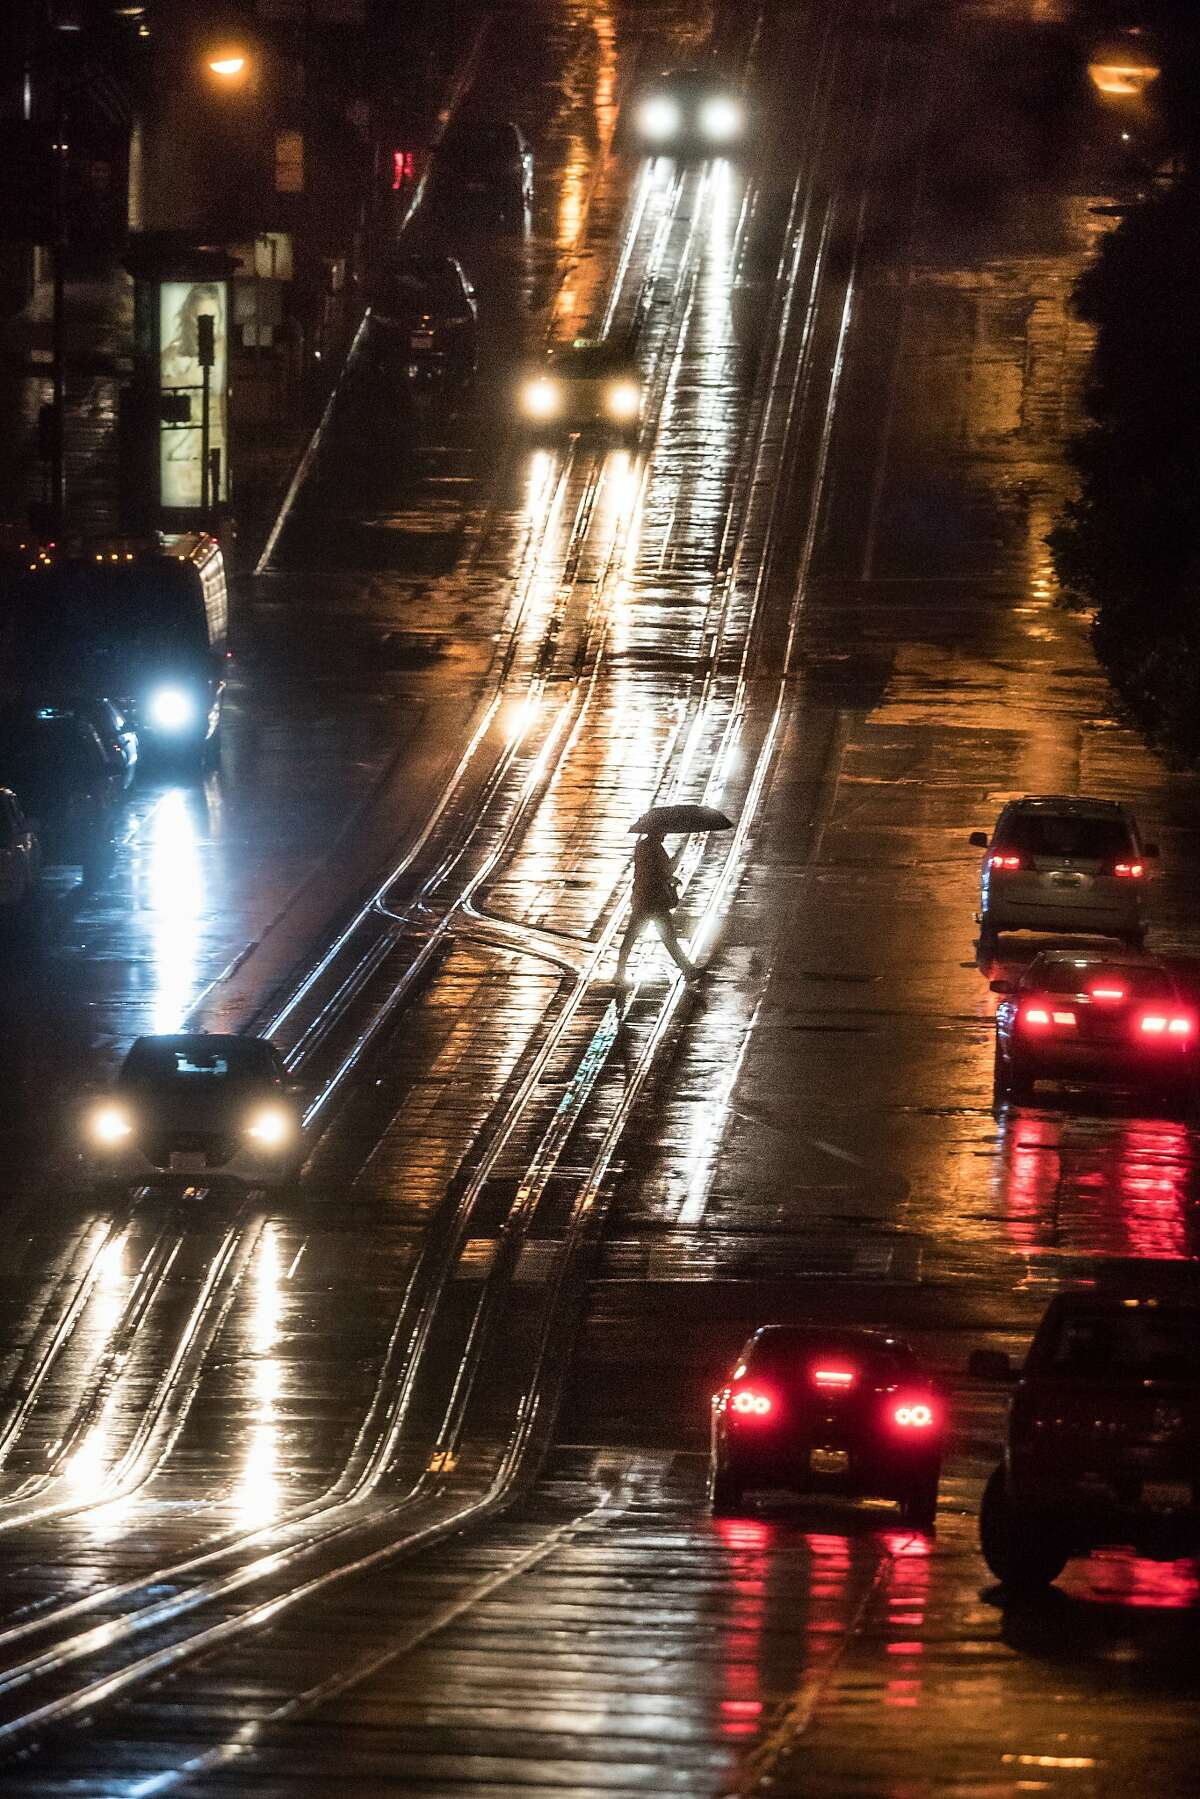 A pedestrian crosses at California and Montgomery streets in the rain. This year's biggest storm to date remains the Jan. 8 deluge that poured 3.15 inches of rain onto downtown San Francisco, officials said.